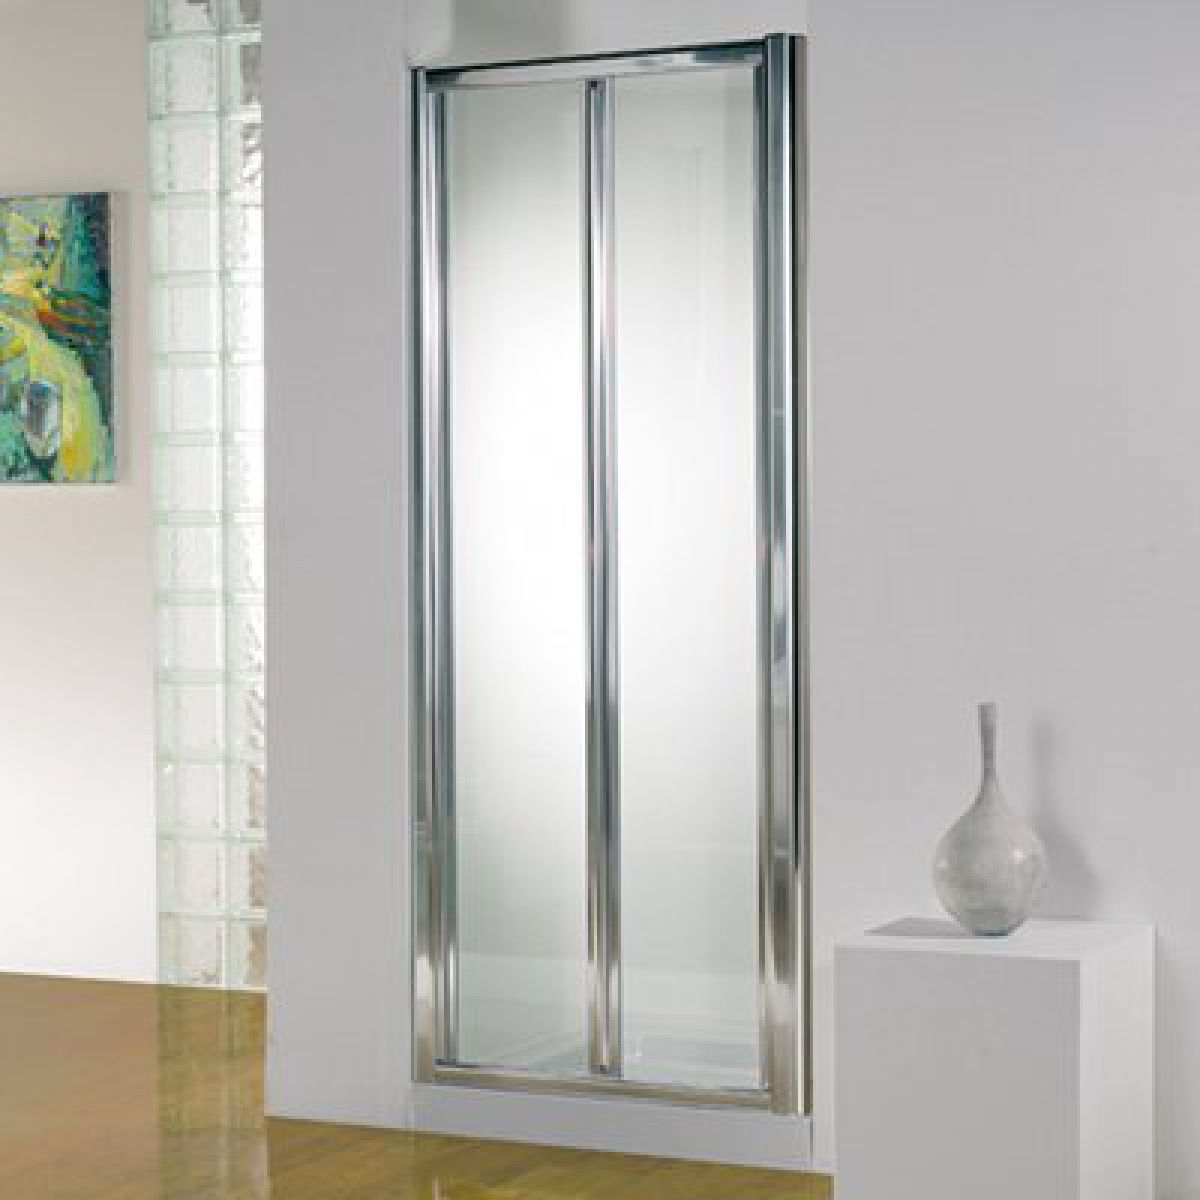 Bi fold doors for bathroom - 12004147194862921200 home shower enclosures bi fold shower doors 837141 bathroom bi fold door 12001200 save